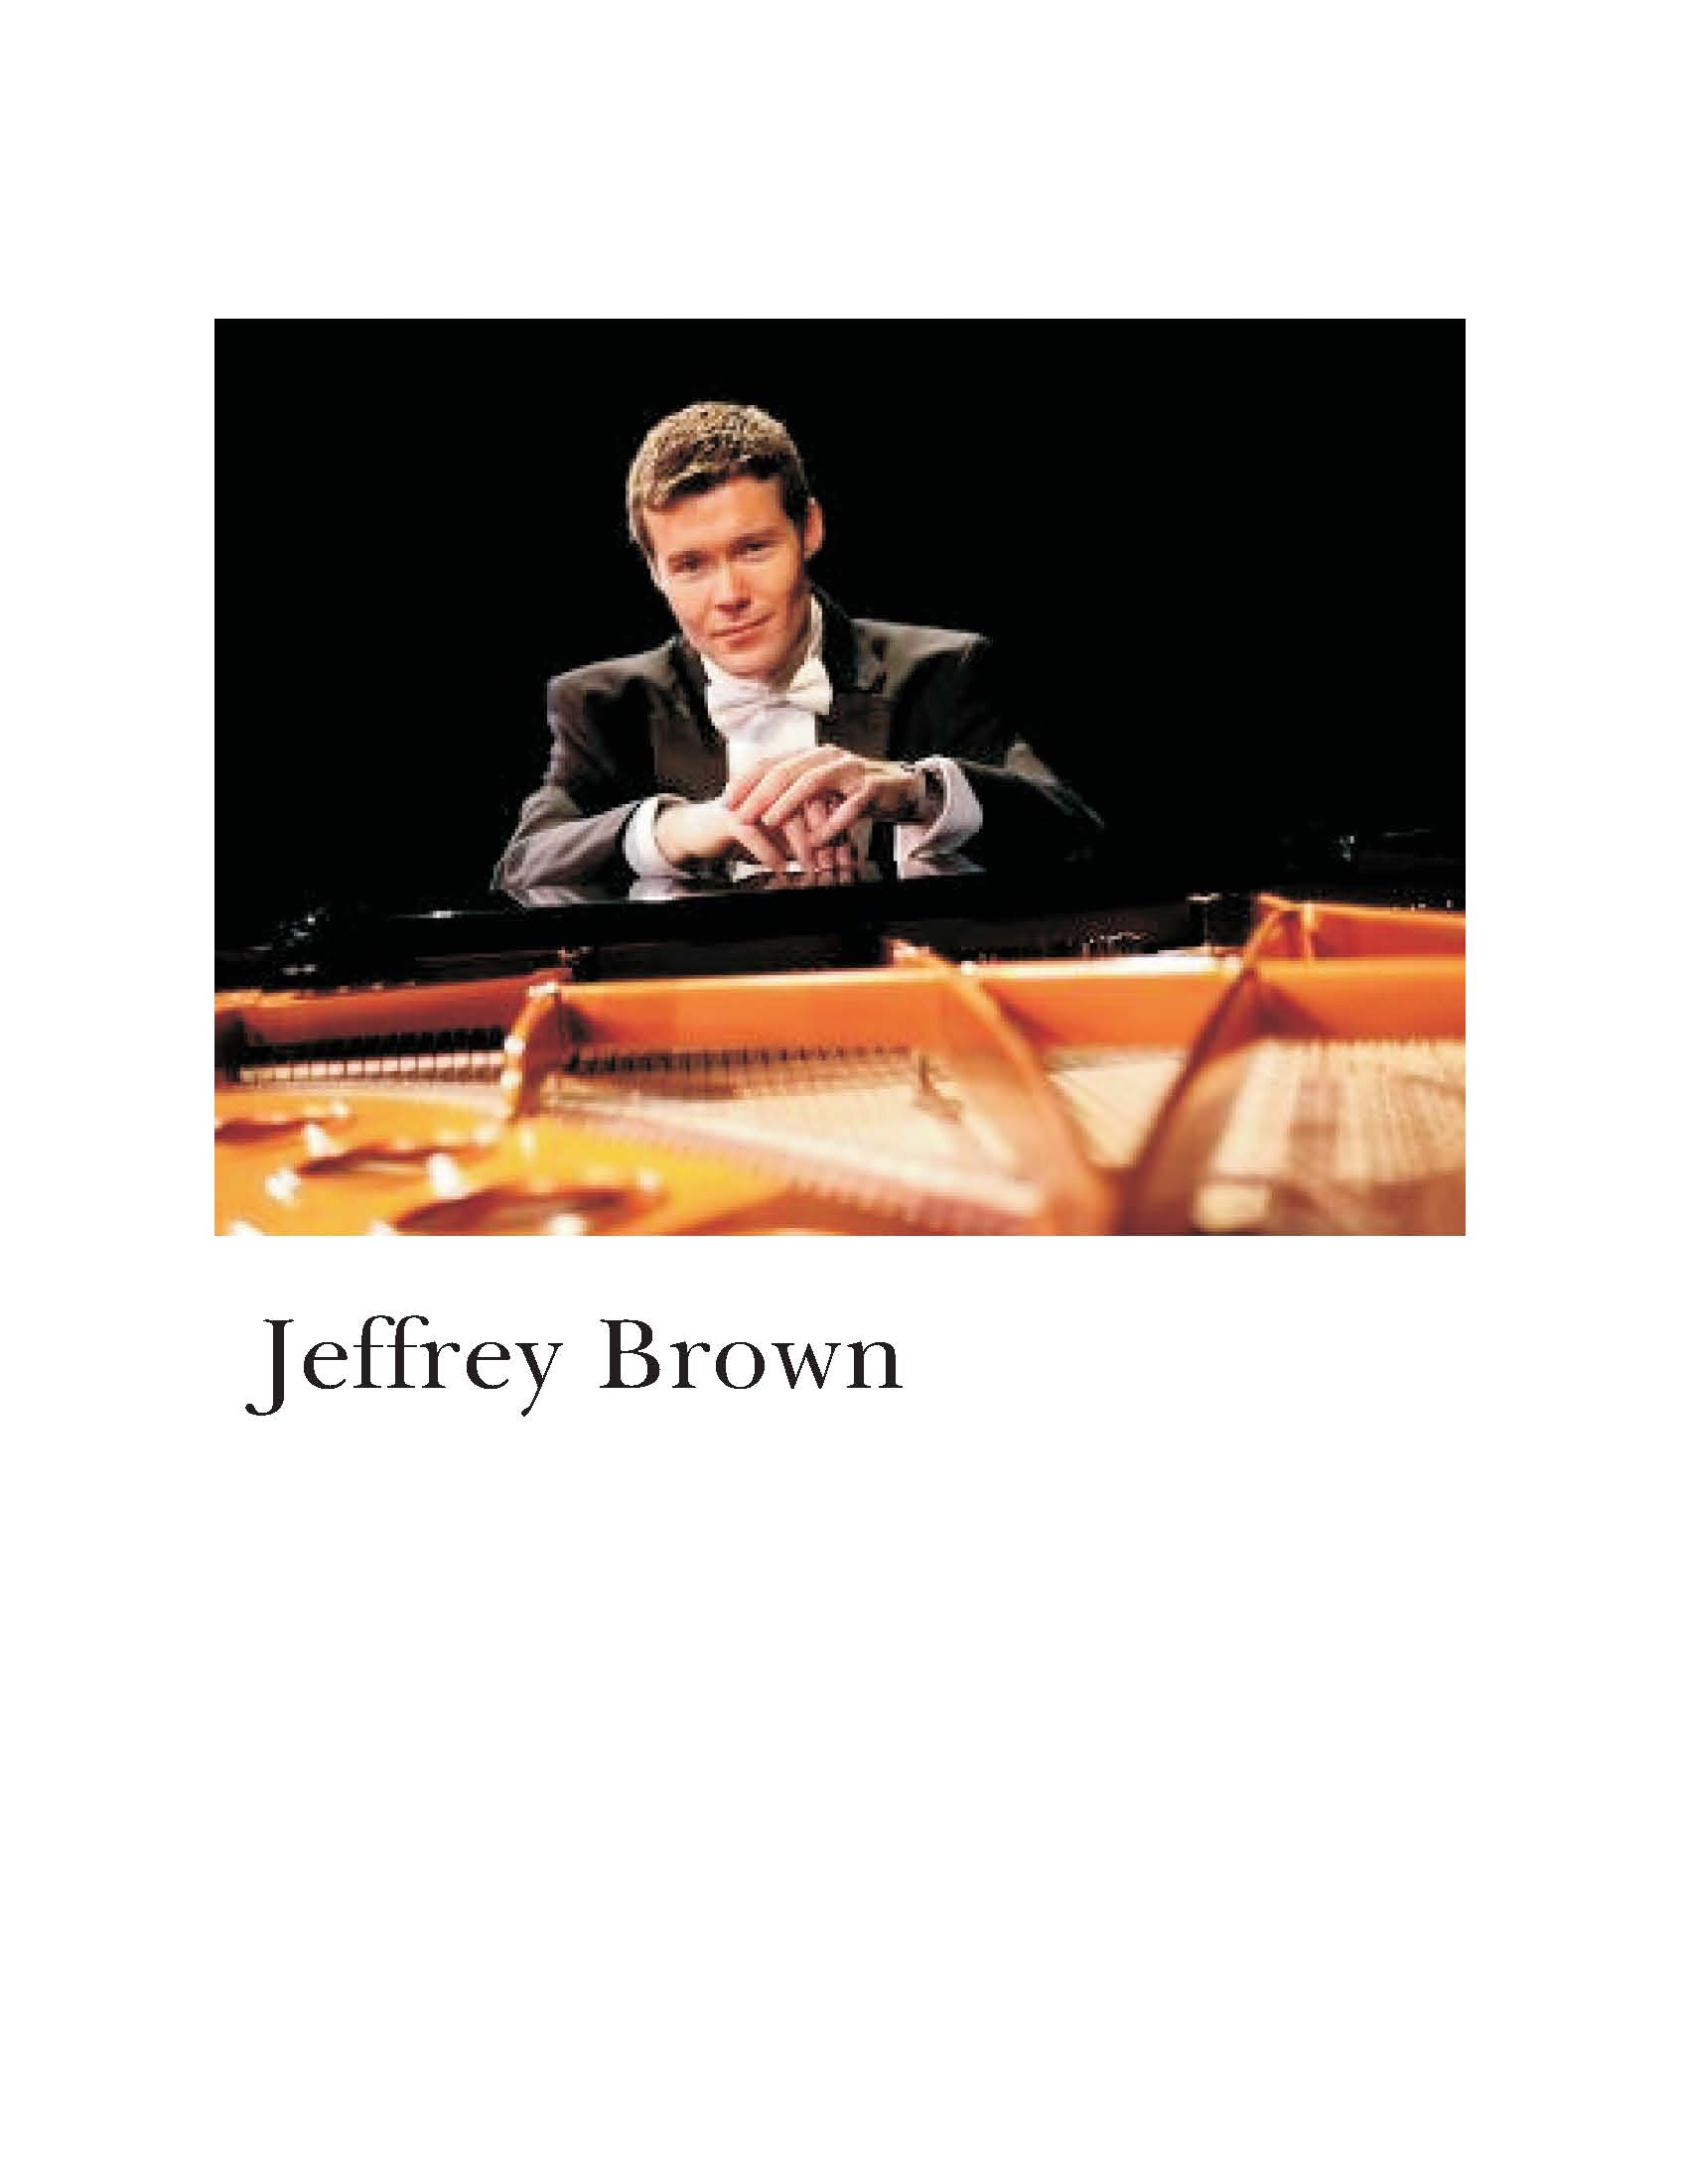 JeffreyBrown